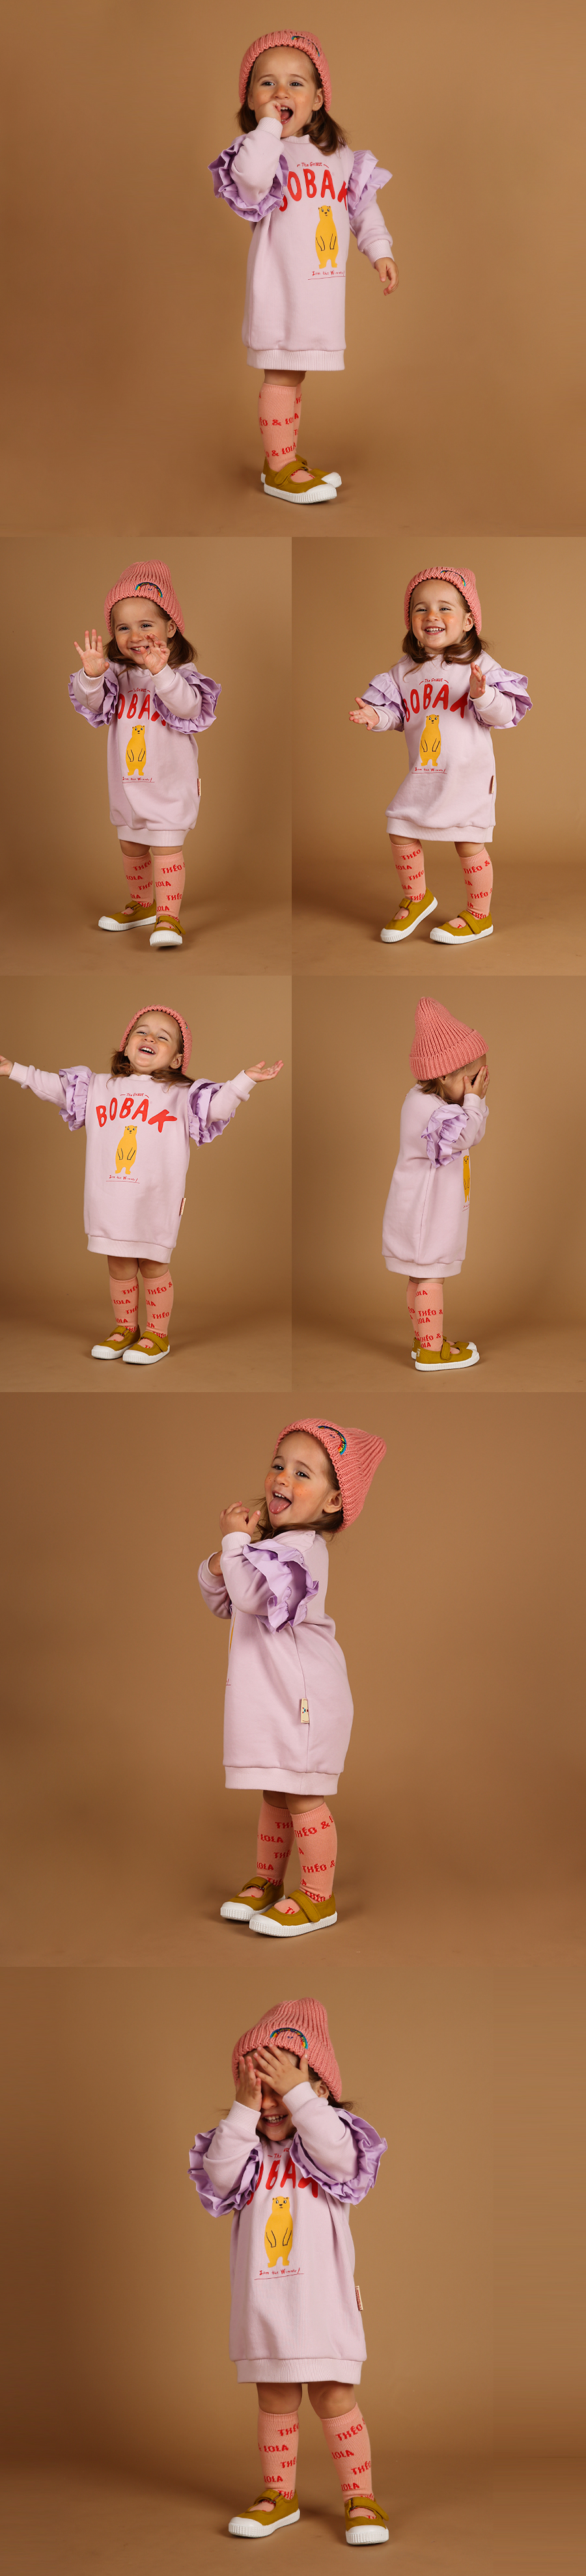 Bobak baby ruffle dress 상세 이미지